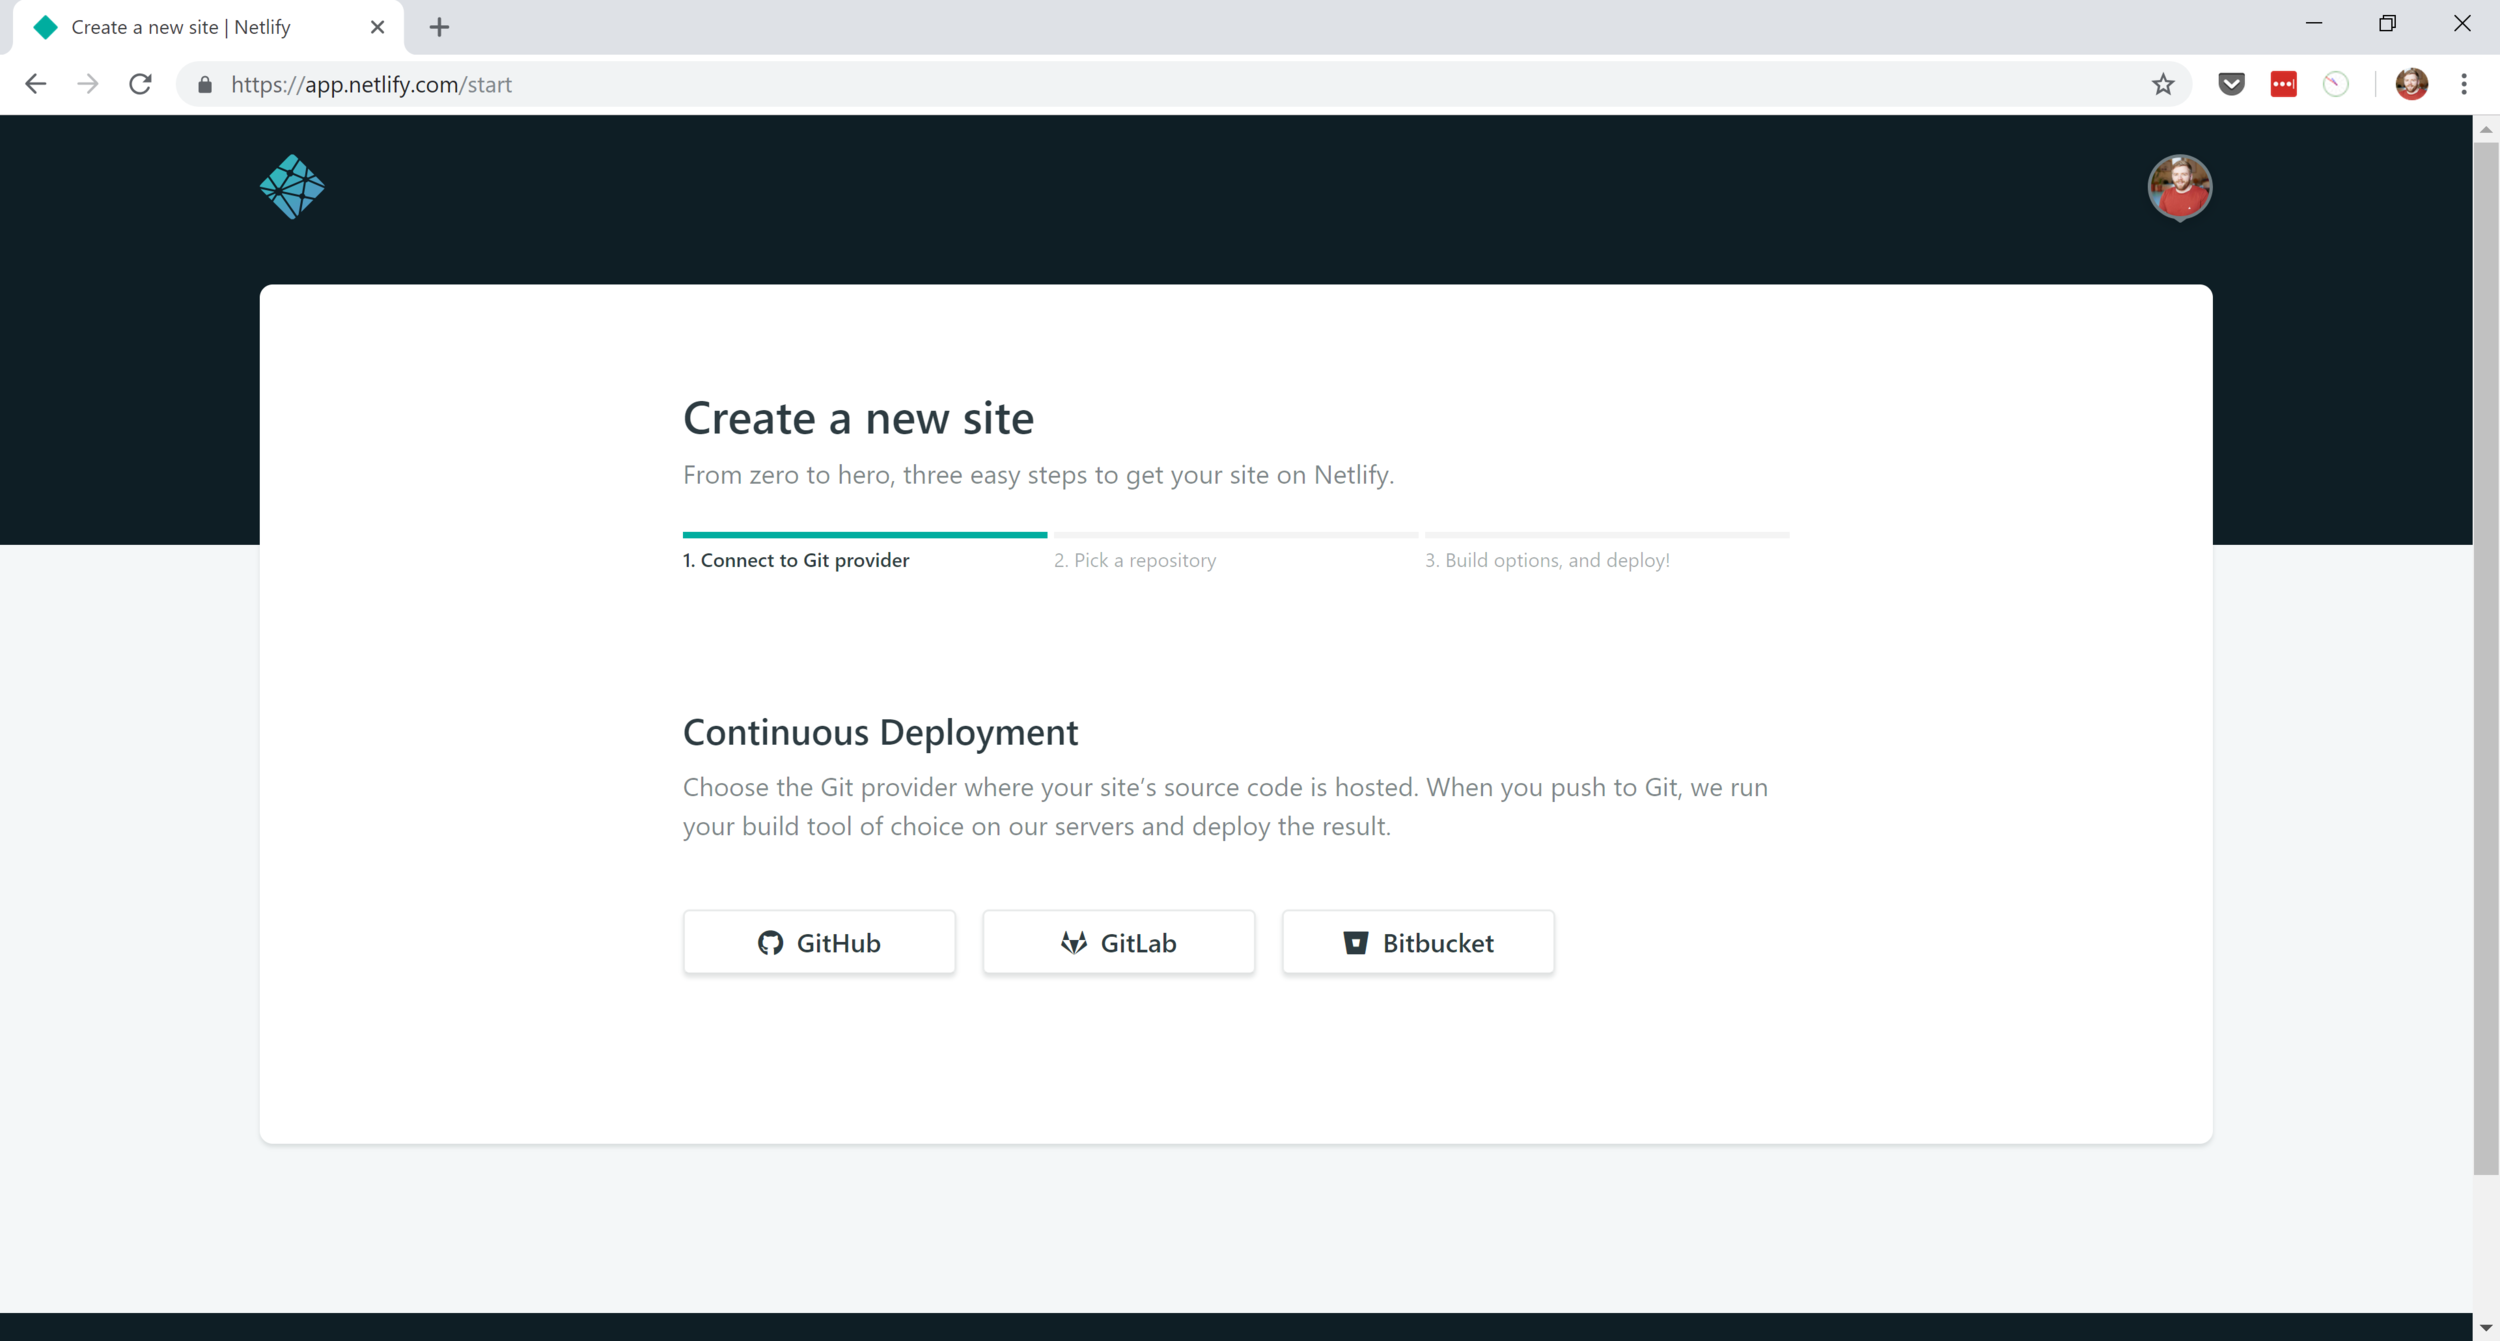 Create a new Netlify site.